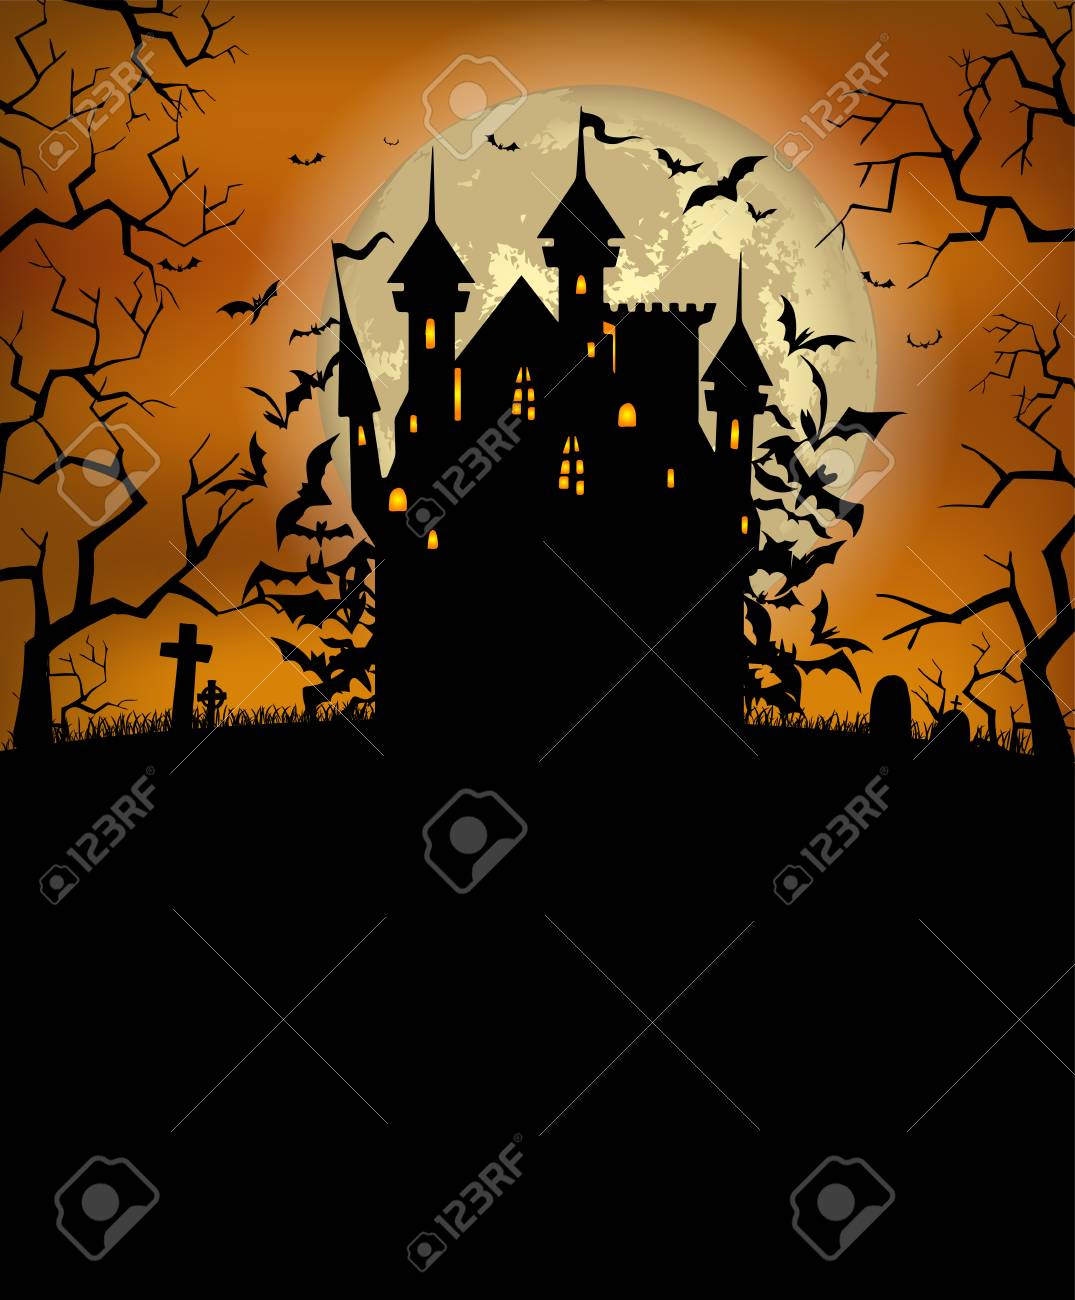 Castello Halloween.Halloween Background With Scary Dracula Castle And Various Silhouettes